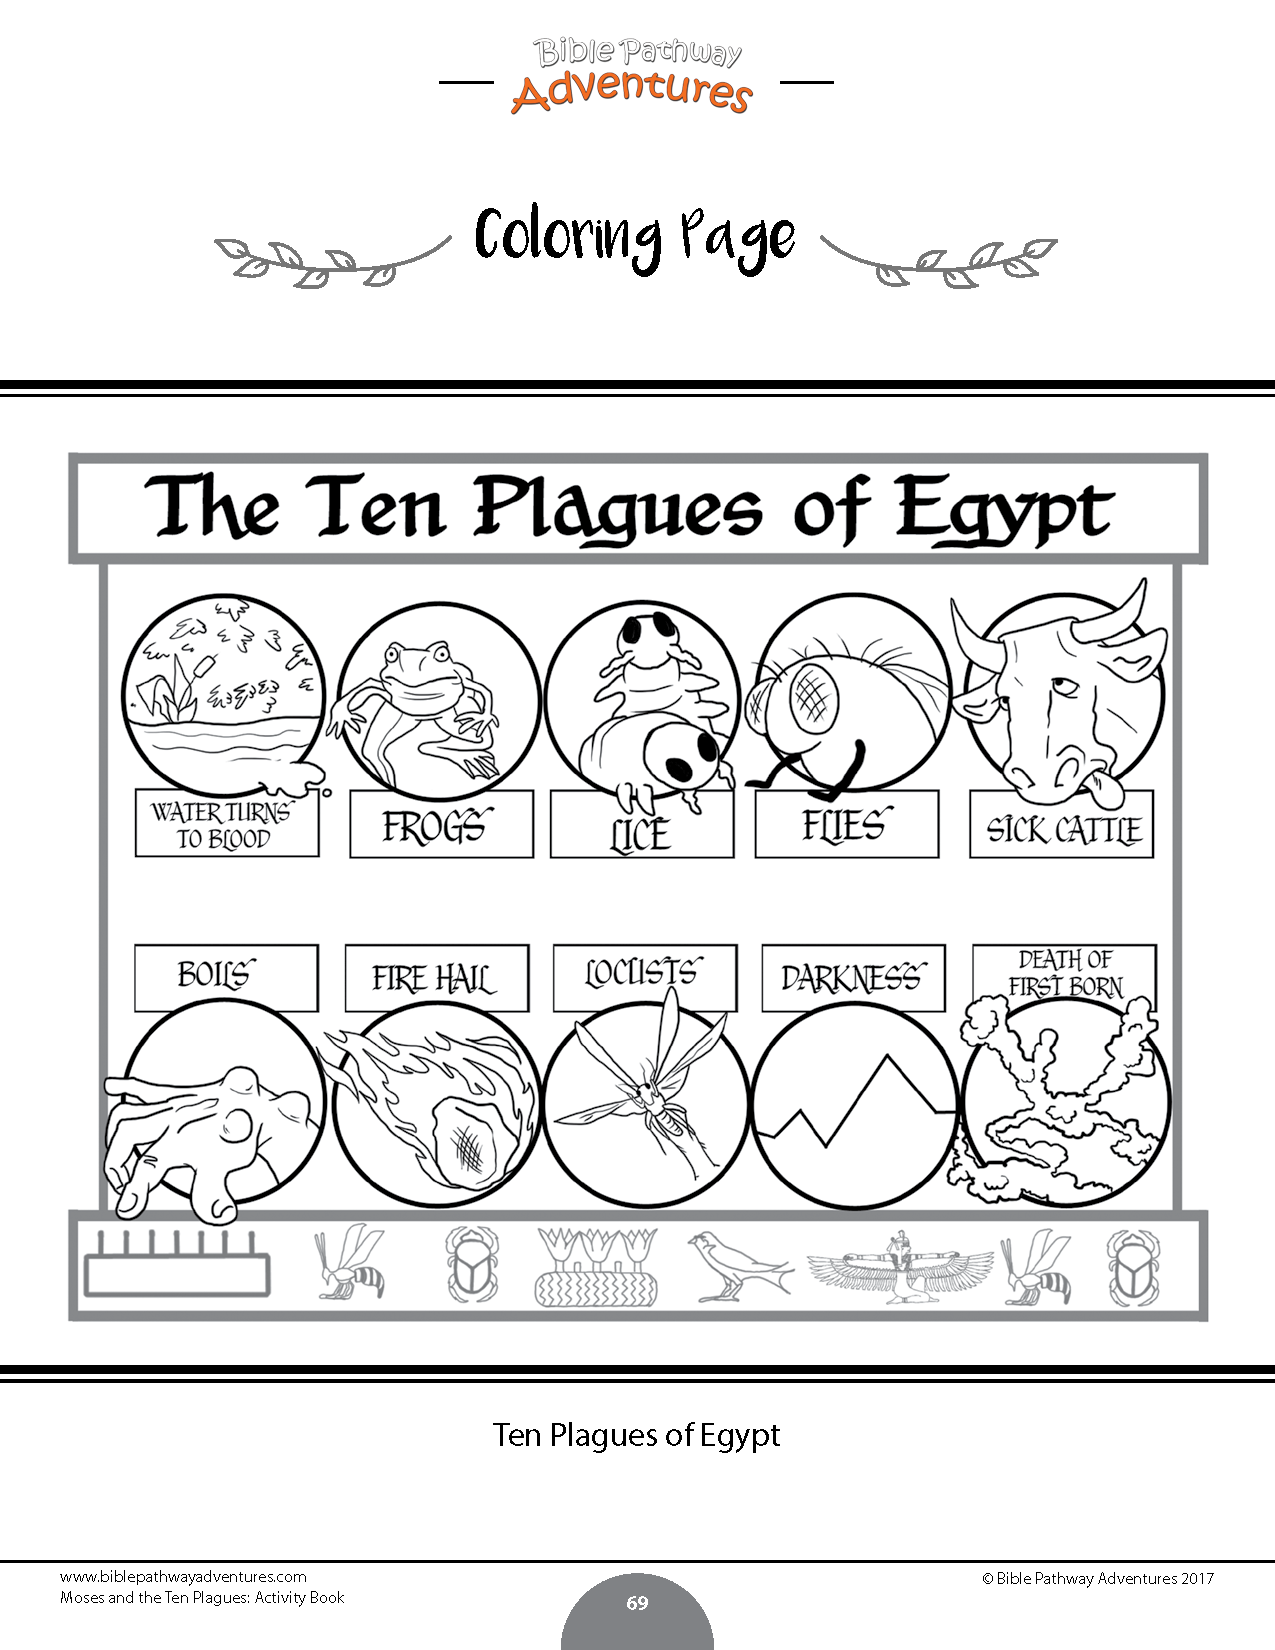 Moses And The Ten Plagues Activity Book Kids Ages 6 12 Ten Plagues Bible Activities For Kids Bible Study For Kids [ 1650 x 1275 Pixel ]